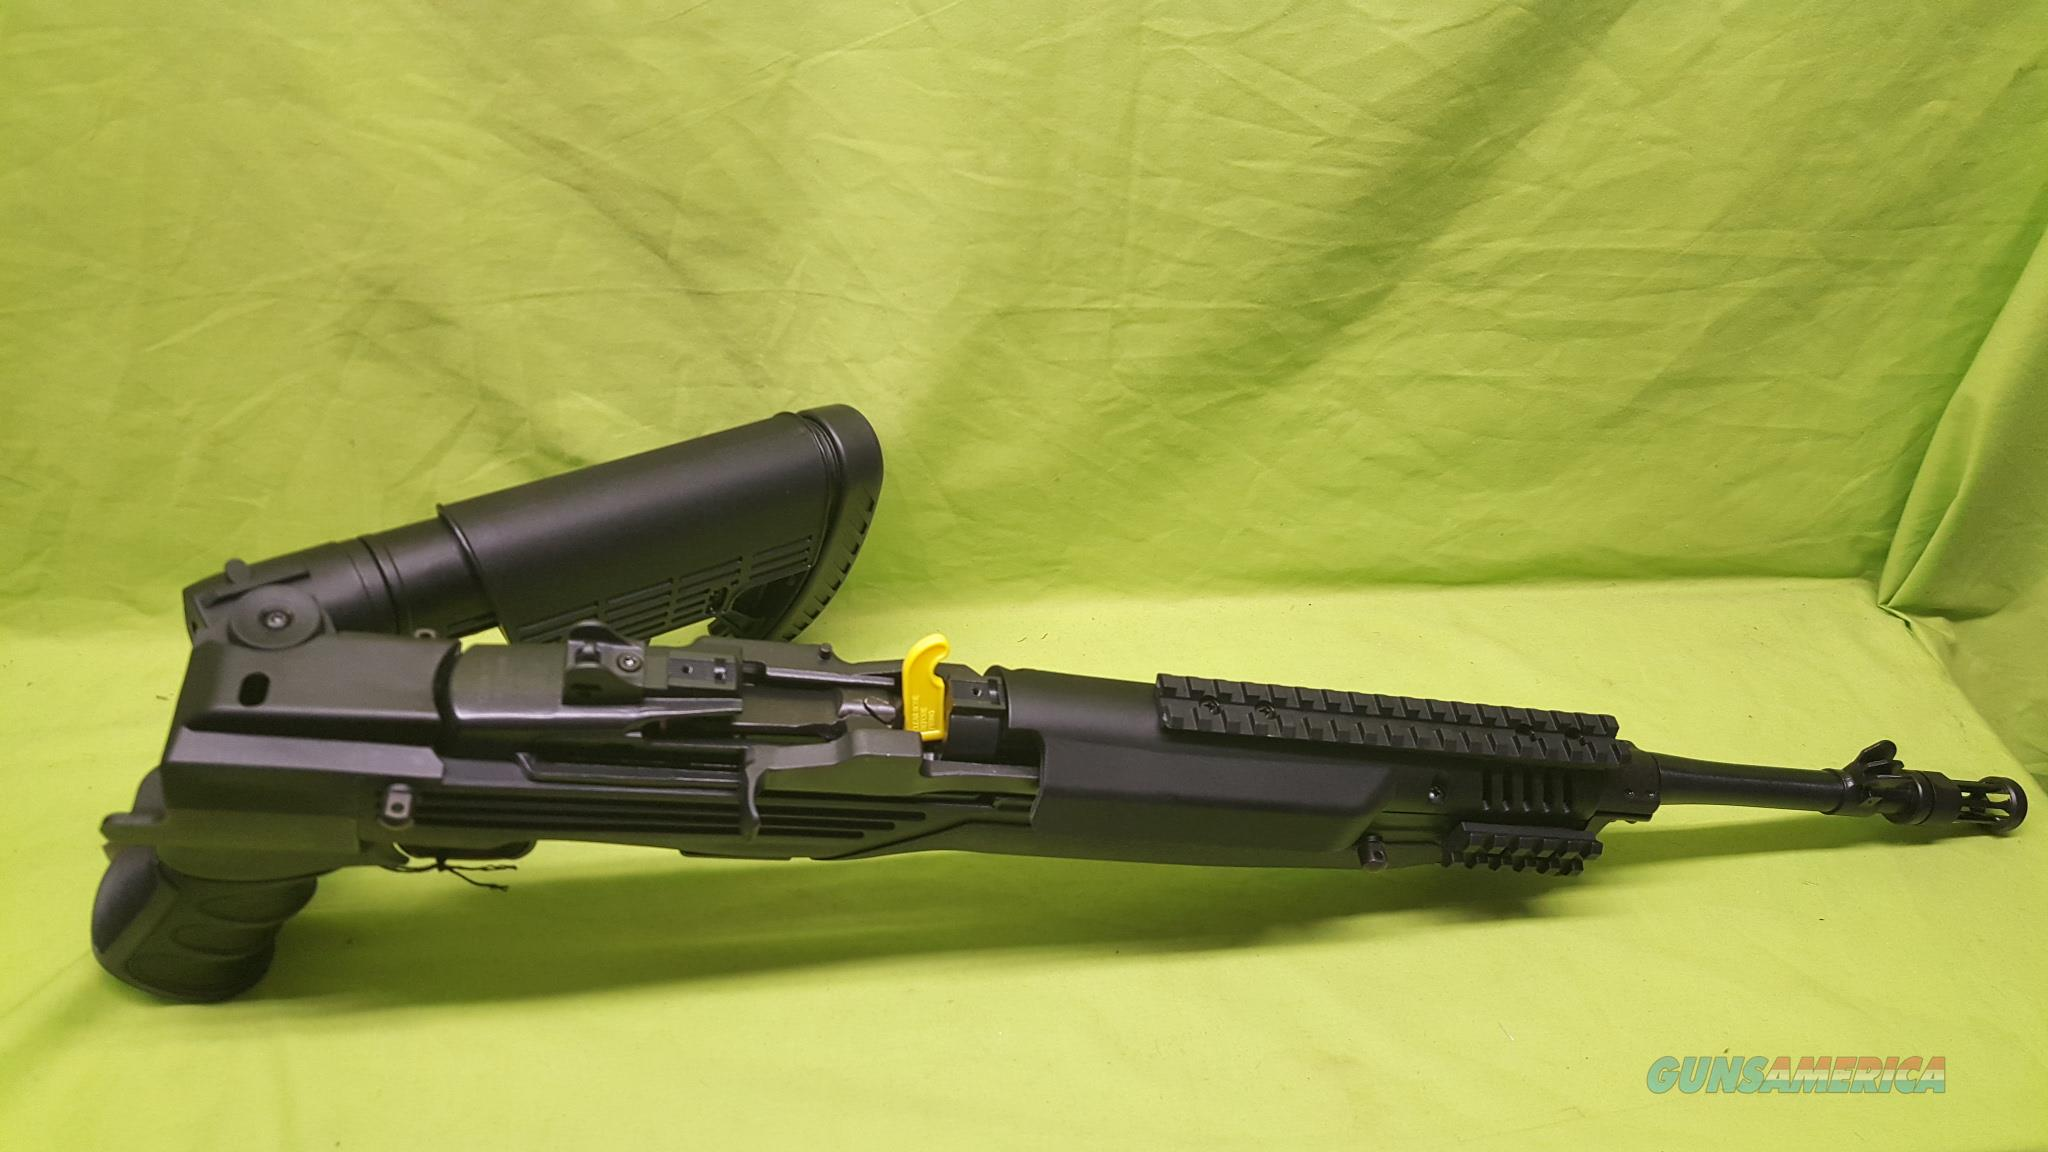 RUGER MINI 14 MINI-14 223 5.56 20R FLD STK AR15  Guns > Rifles > Ruger Rifles > Mini-14 Type